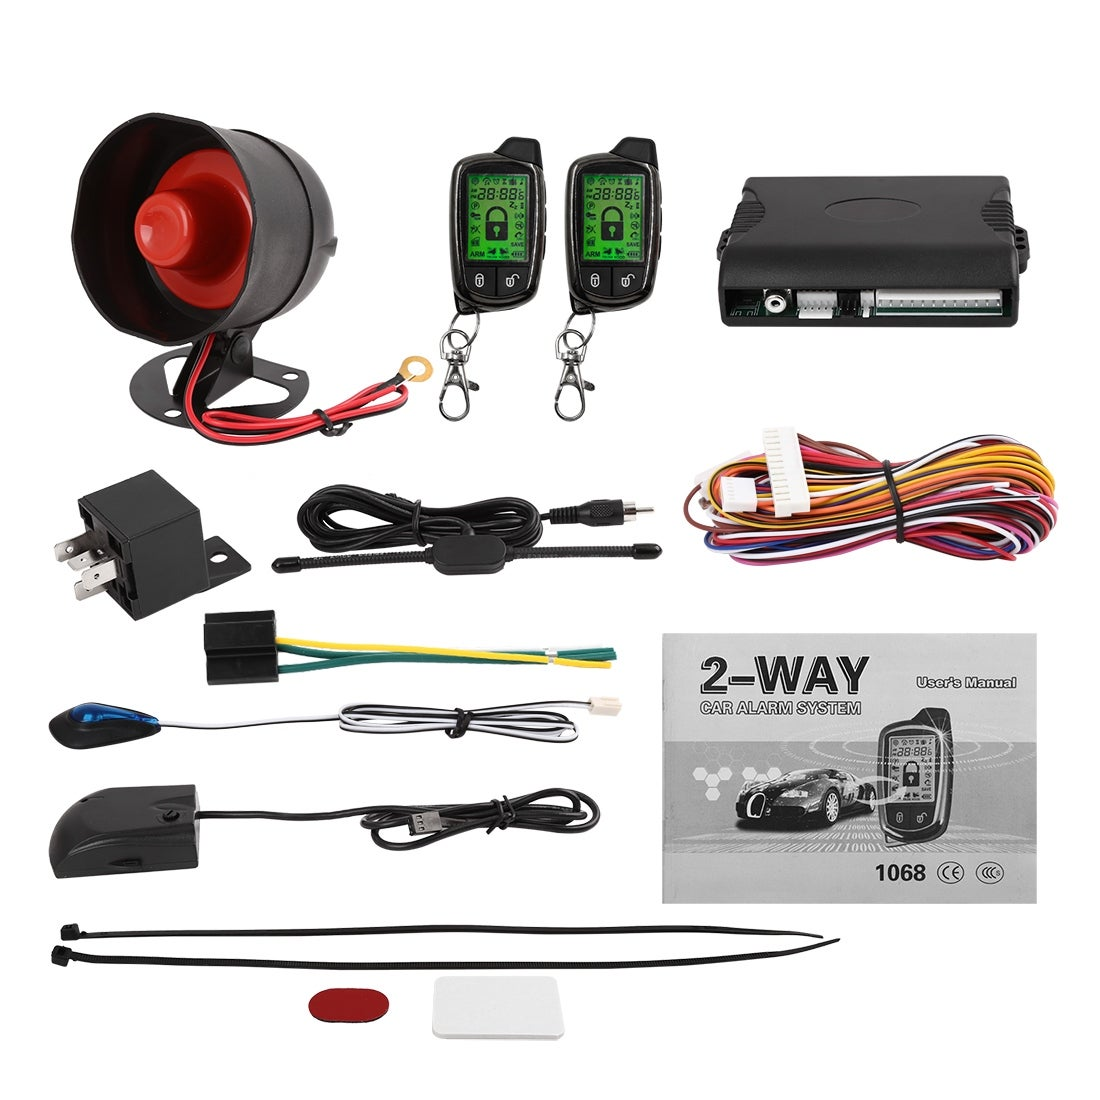 uxcell 2 Way Alarm Security System Vehicle LCD Remote Control Keyless Entry for Auto